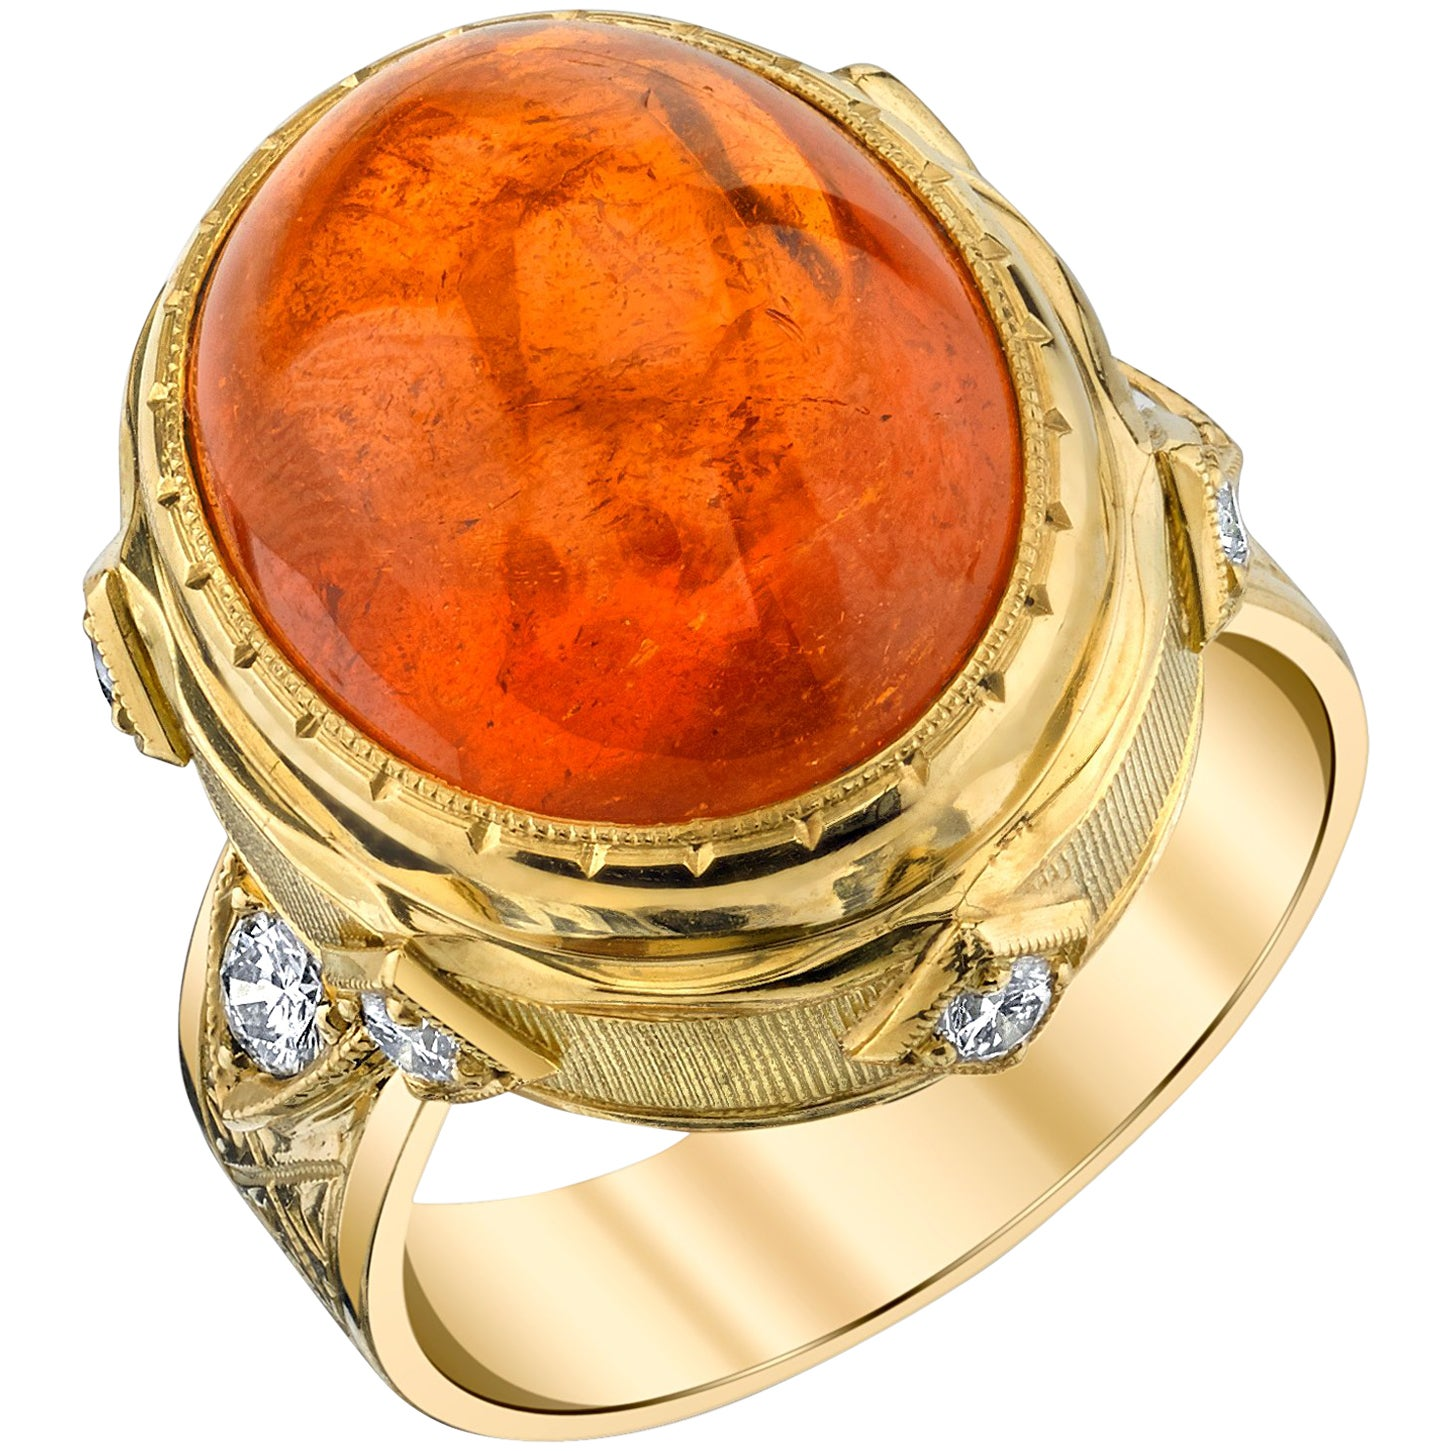 28.55 ct. Spessartite Garnet Cabochon, Diamond Yellow Gold Bezel Dome Ring